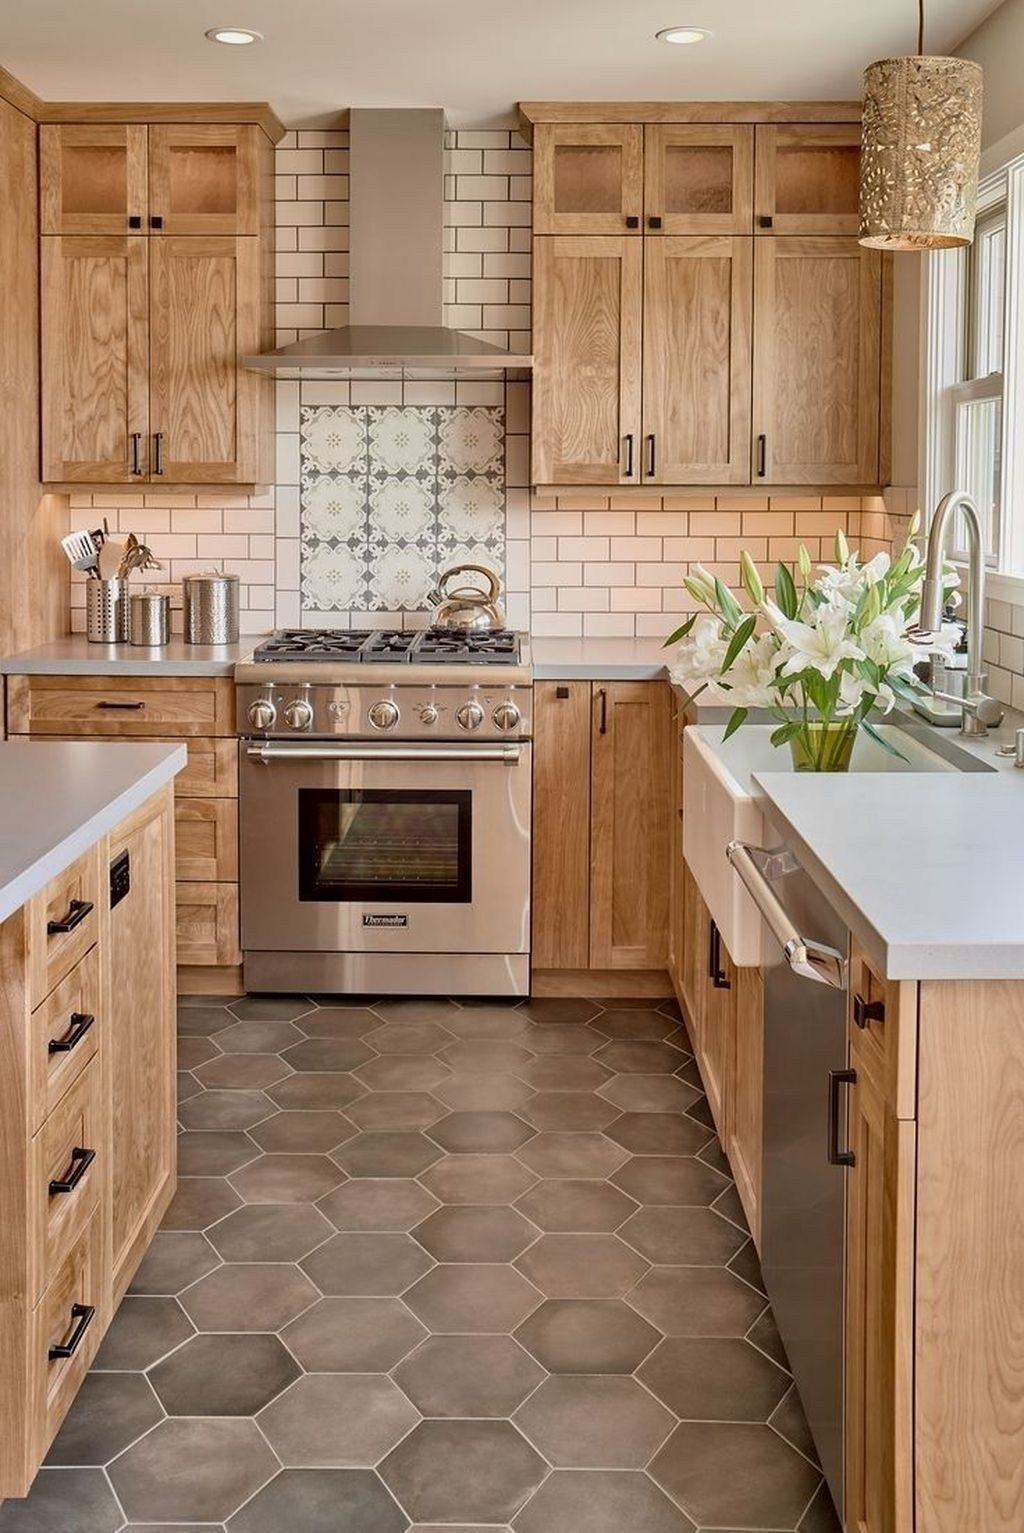 42 the best modern farmhouse kitchen design to blend on best farmhouse kitchen decor ideas and remodel create your dreams id=21792